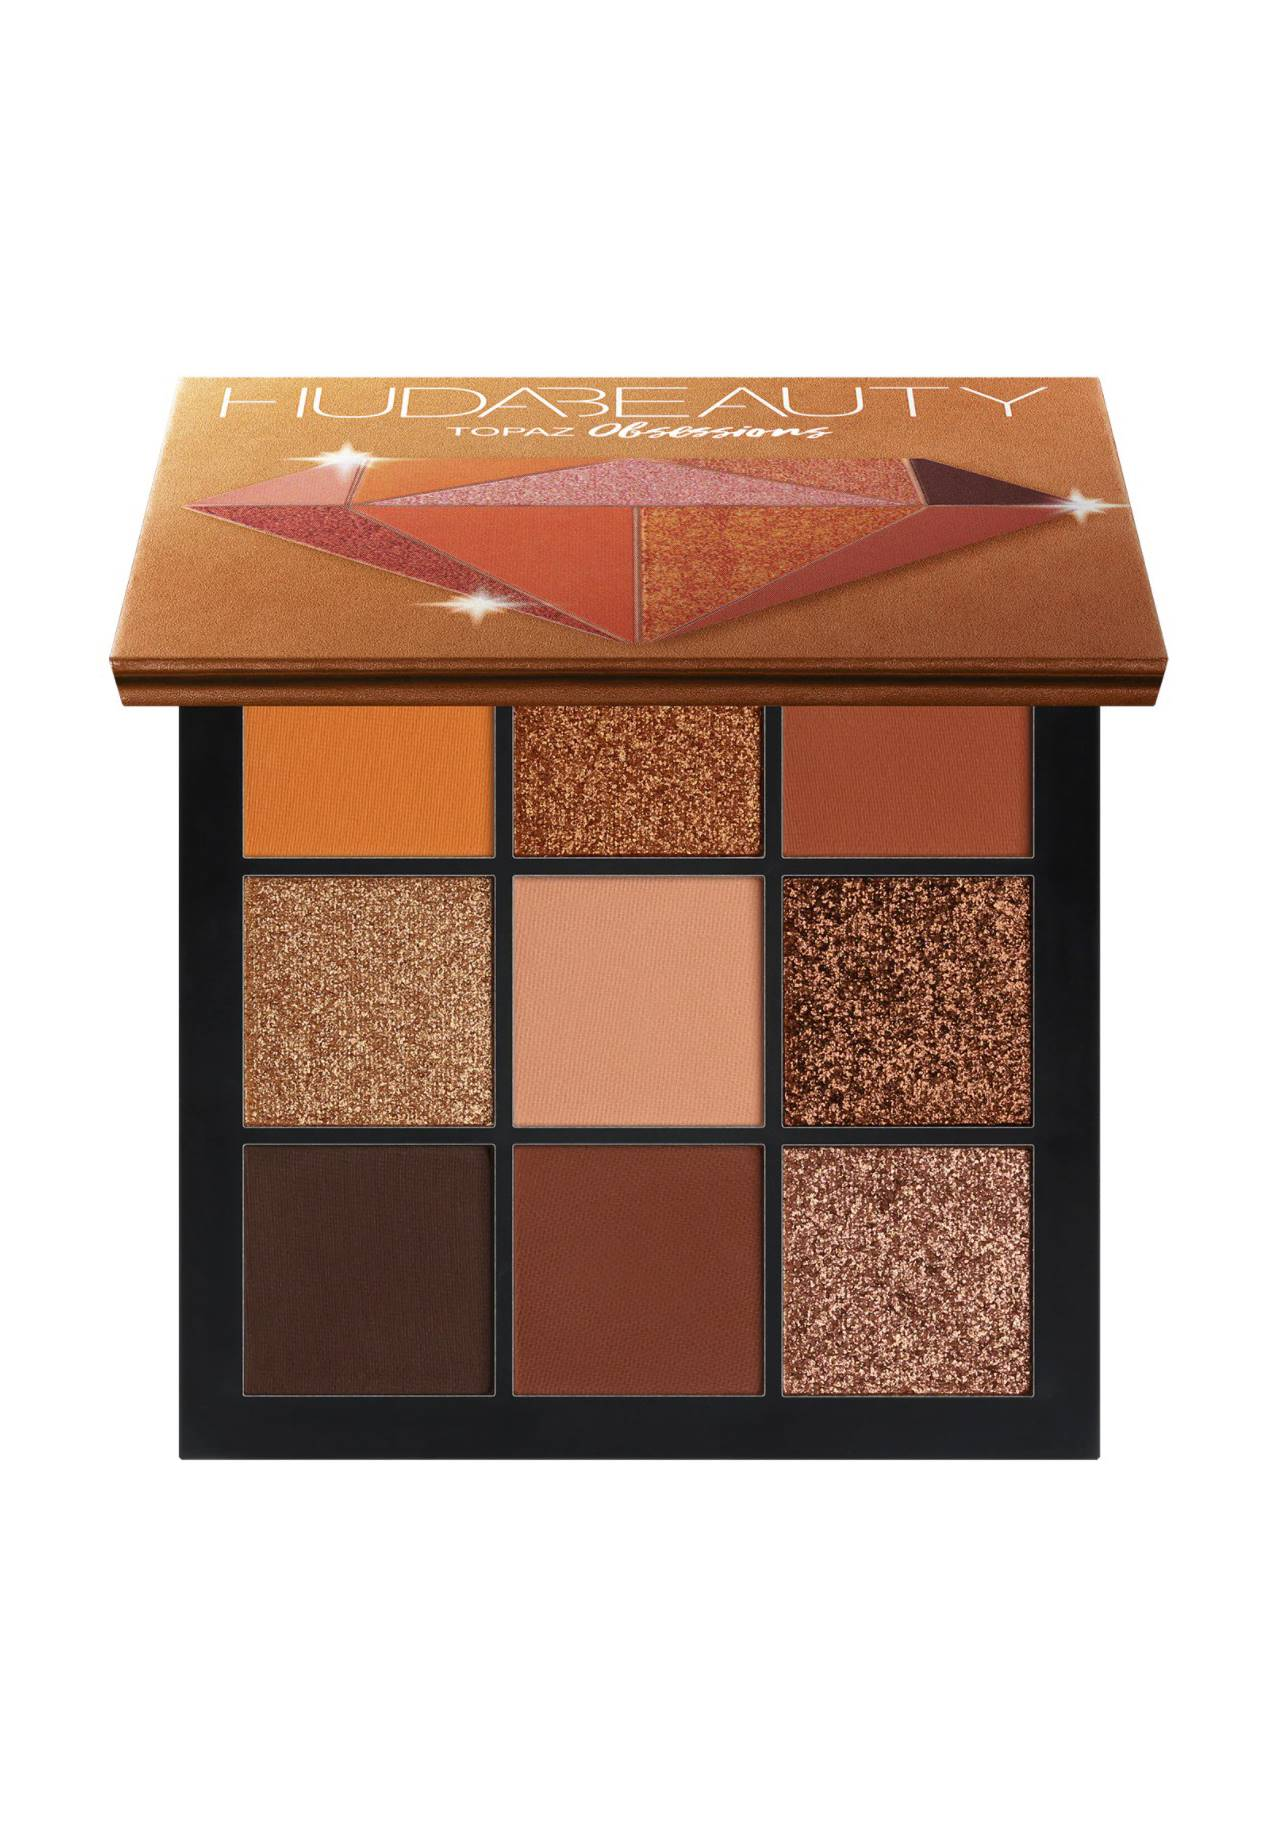 BLACK FRIDAY paleta sombras Huda